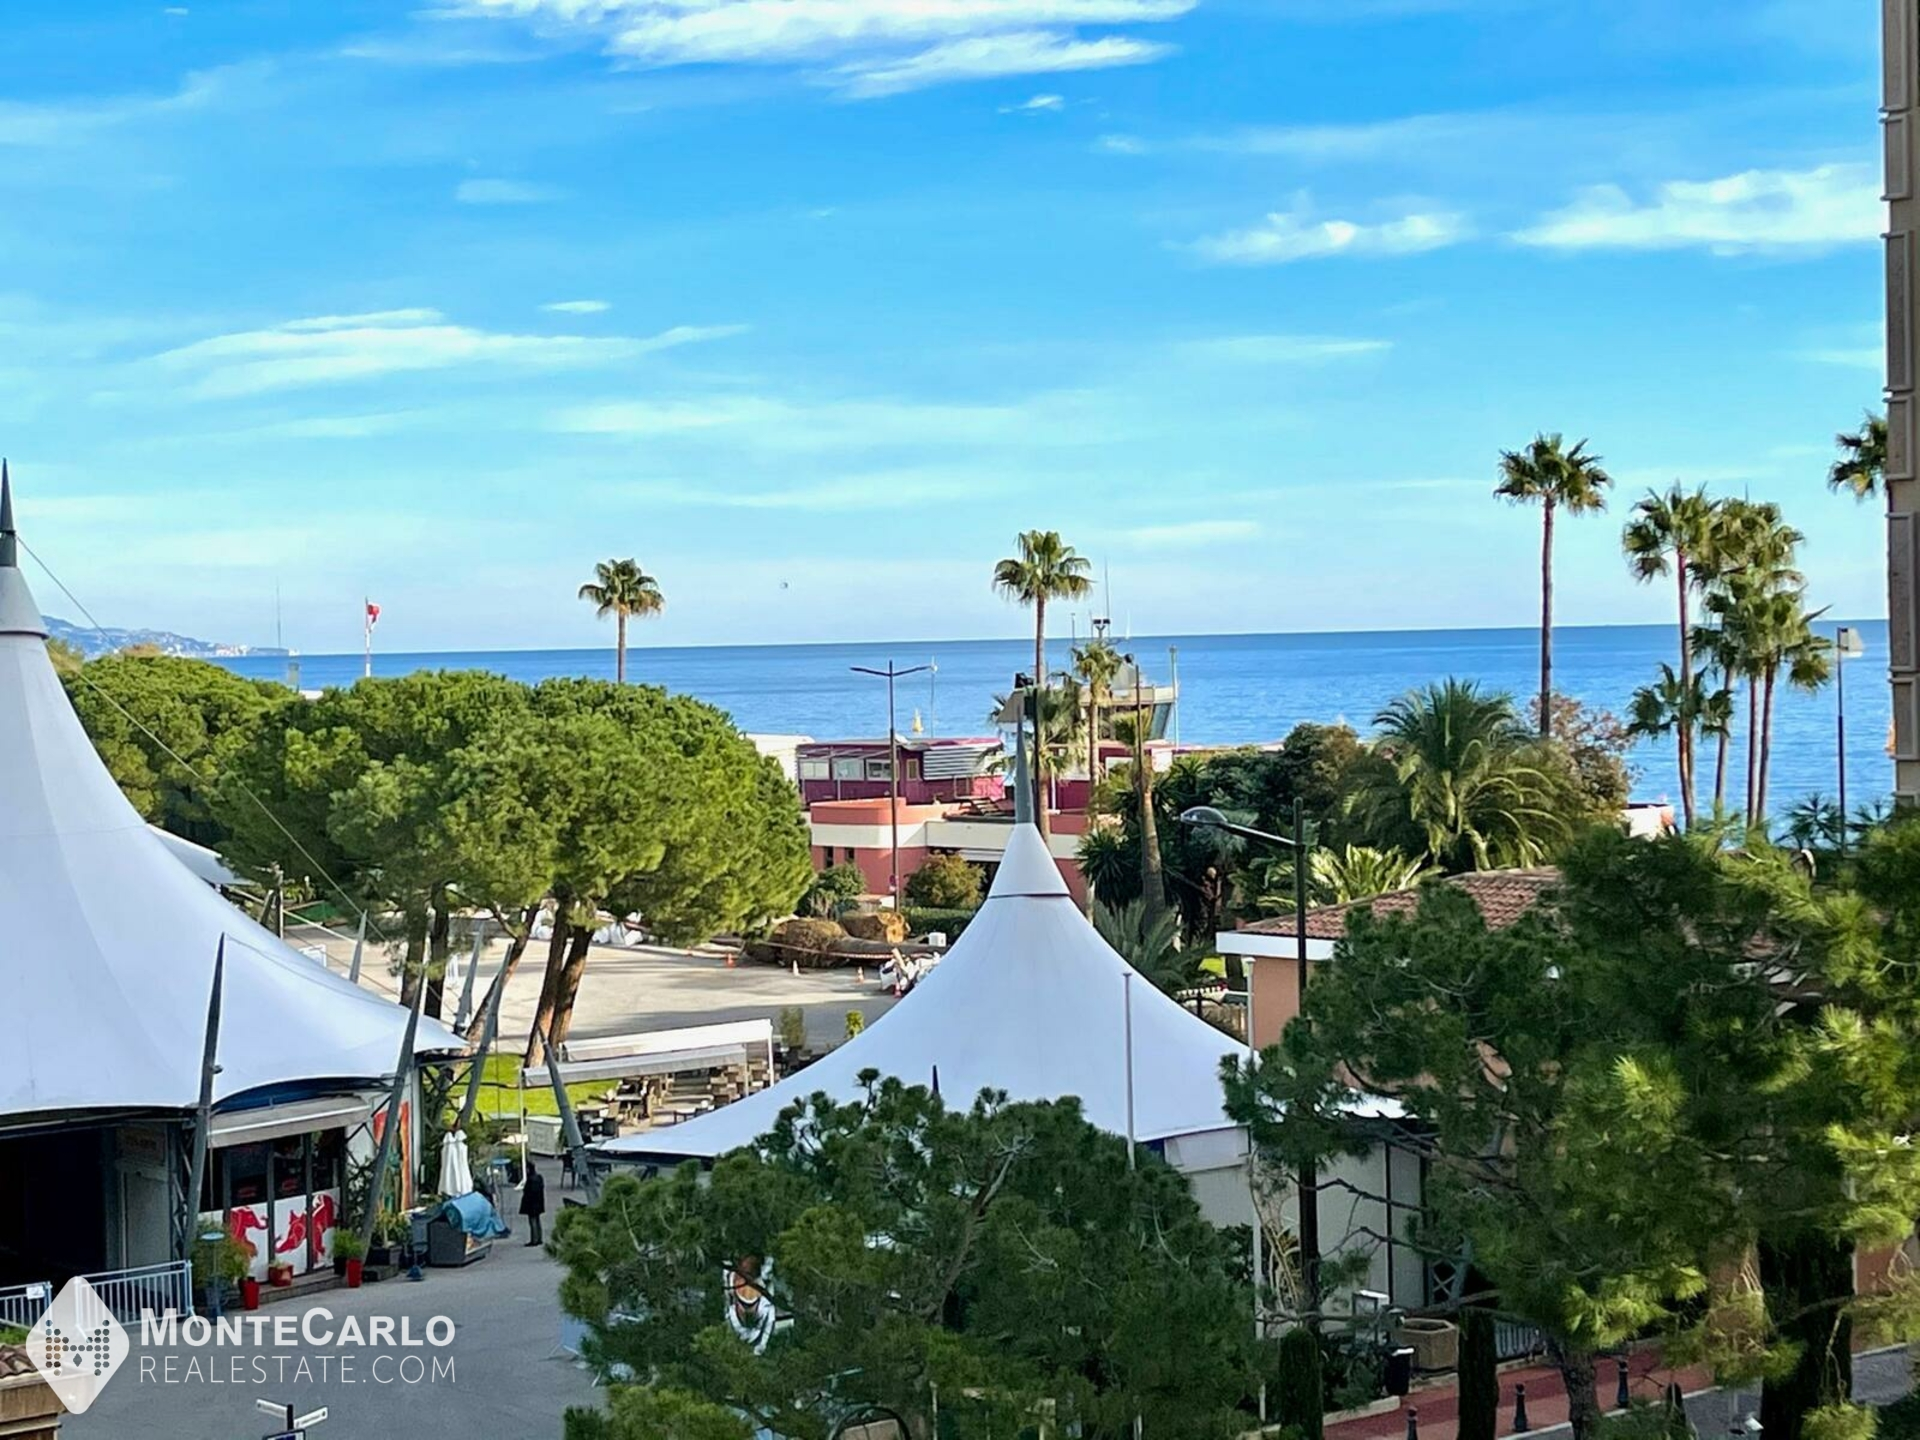 For sale Seaside Plaza - Apartment / 3 rooms : 7 800 000 € | Monte-Carlo Real Estate [VM1220-8]